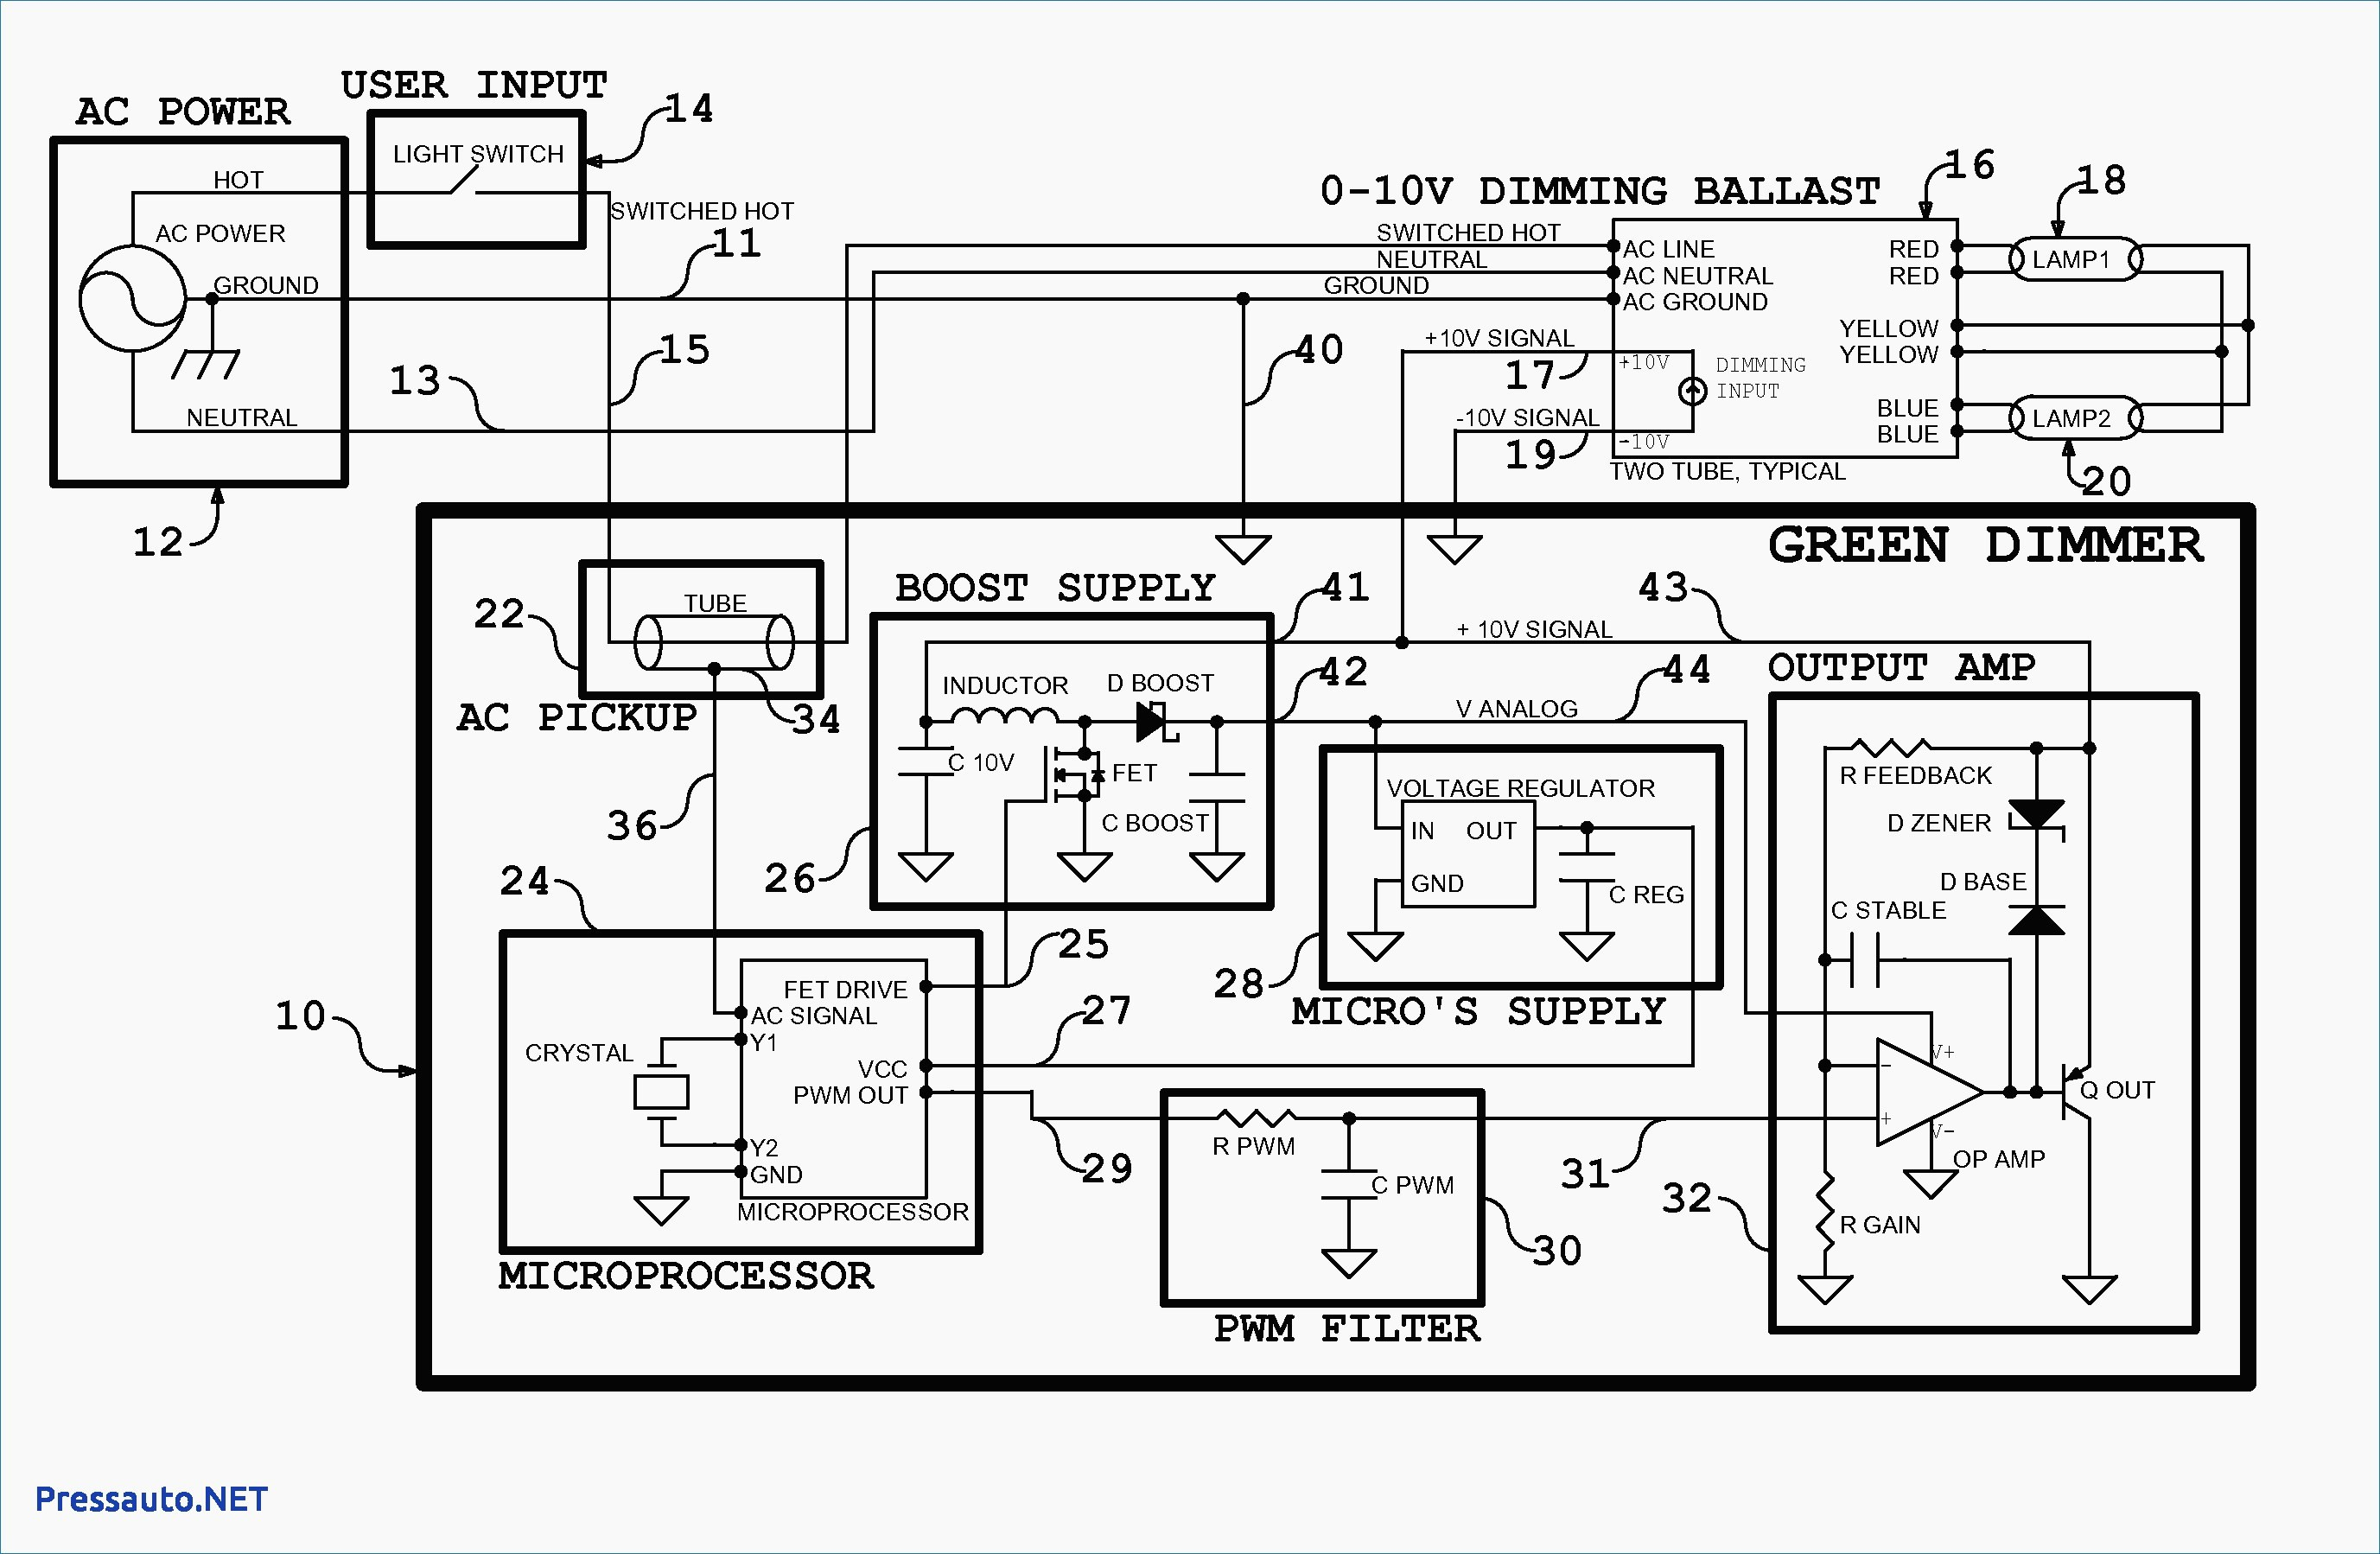 0 10 volt wiring ingersoll rand air compressor diagram 10v dimming inspirational